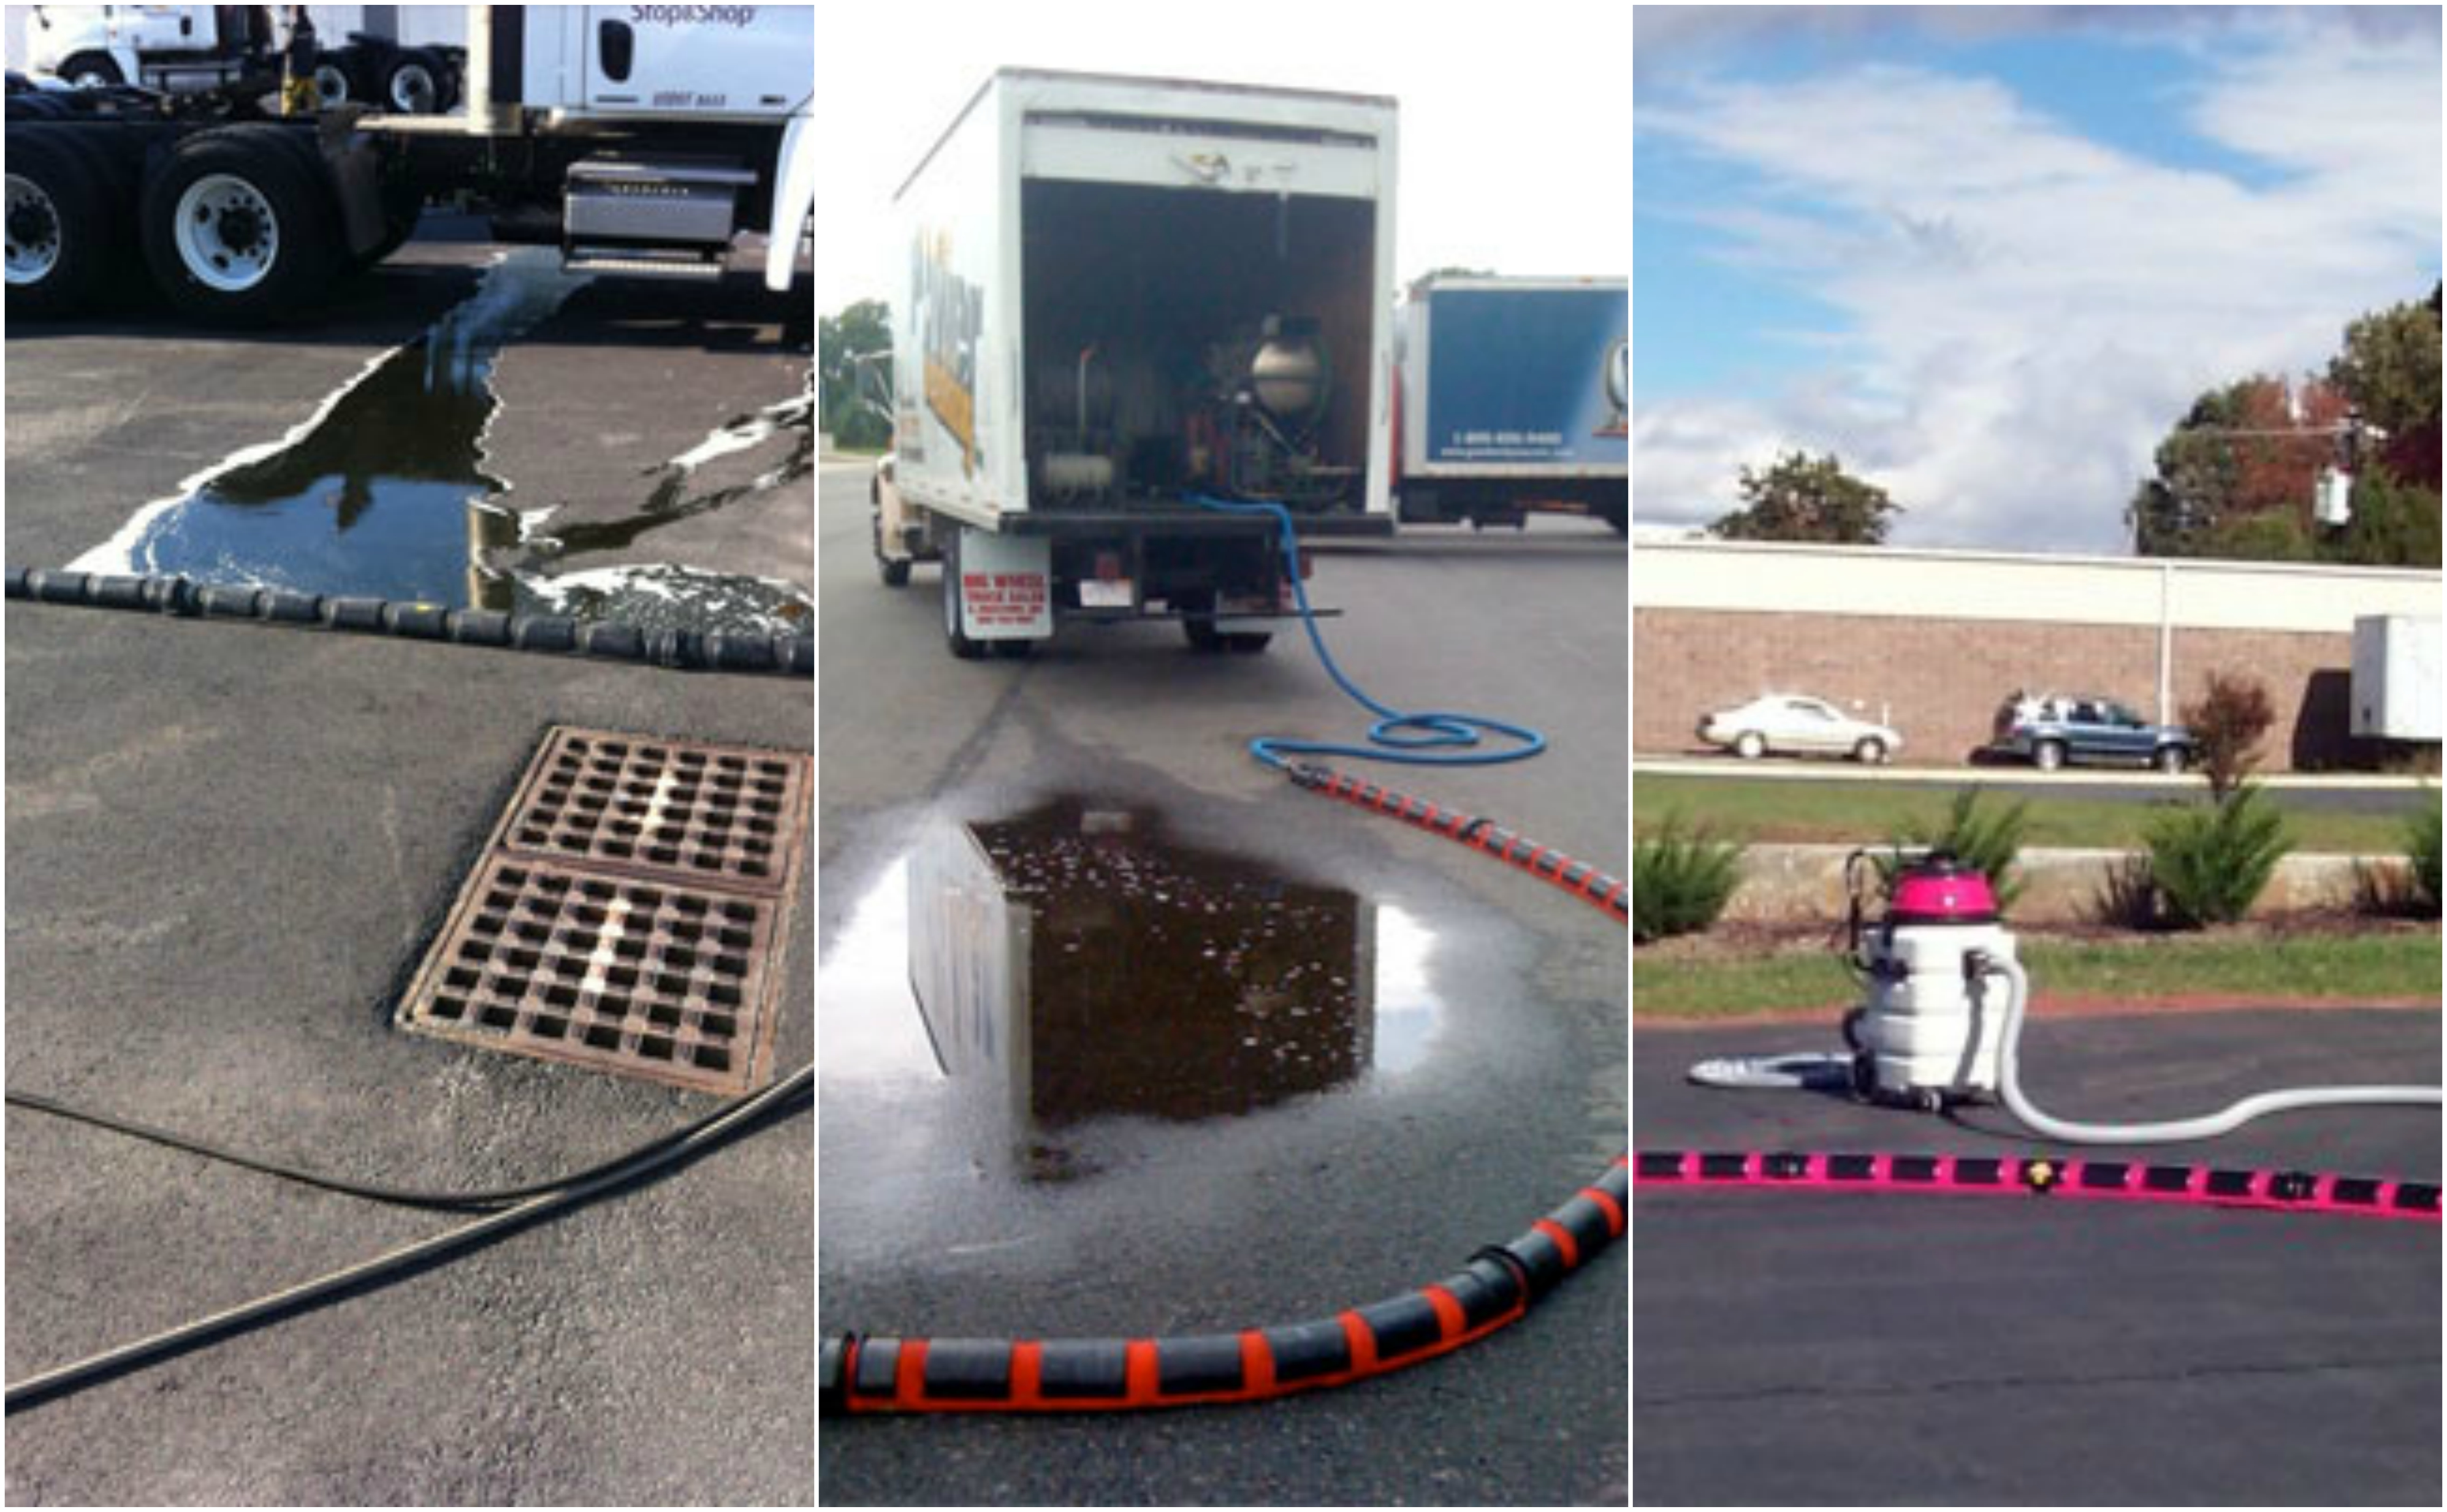 Spill Containment System  Industrial Cleaning Equipment. Obamacare Cost Of Insurance Slab Leak Repair. Online Phd In Economics Carpet Maple Grove Mn. Storage Hollywood Florida Best Backup For Pc. Colleges With Color Guard Sore Elbow Tendons. When Are The Airline Tickets Cheapest. Oil Change Beaverton Or Attorney Criminal Law. Universities In California With Nursing Programs. Precision Machine Tool Solutions